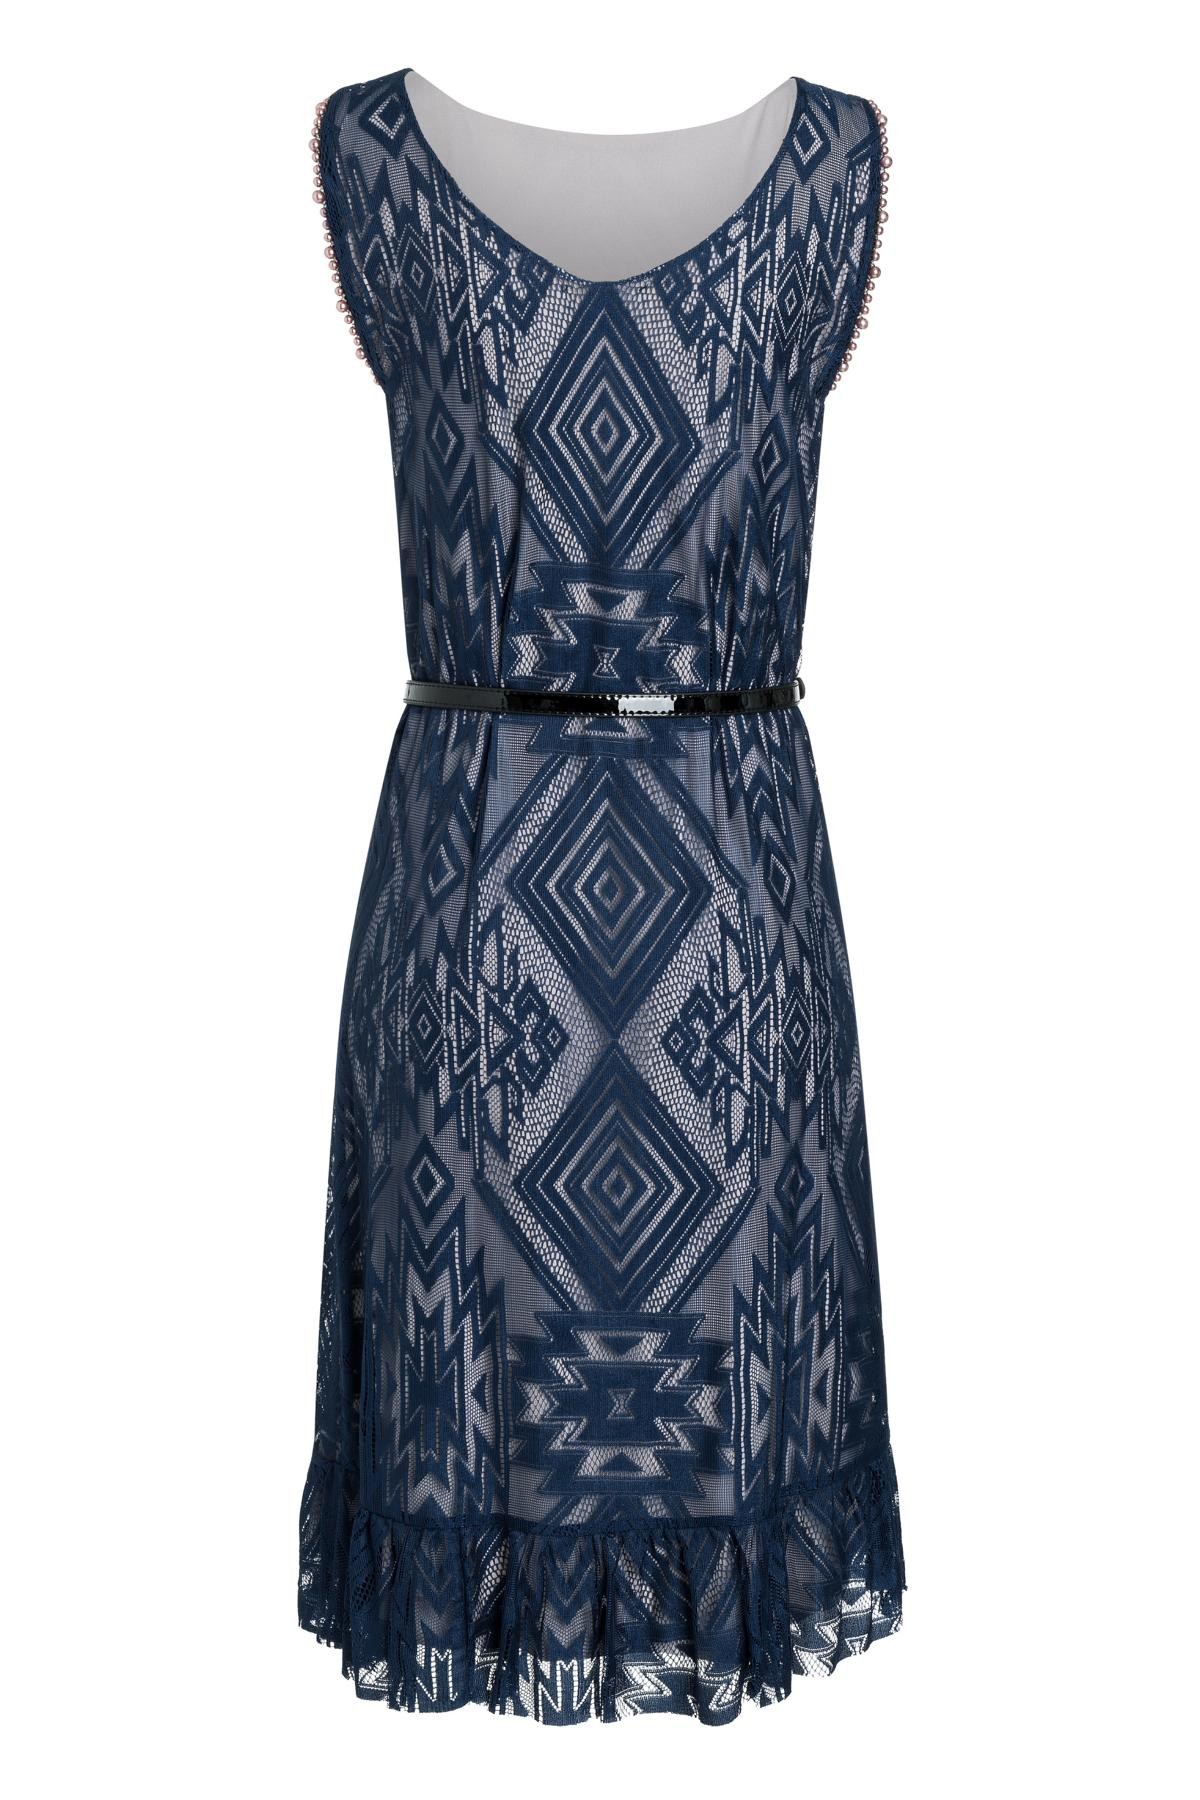 PRODUCT_PICTURE_PRE_7Ana Alcazar Sleeveless Dress Saprona PRODUCT_PICTURE_SUF_7